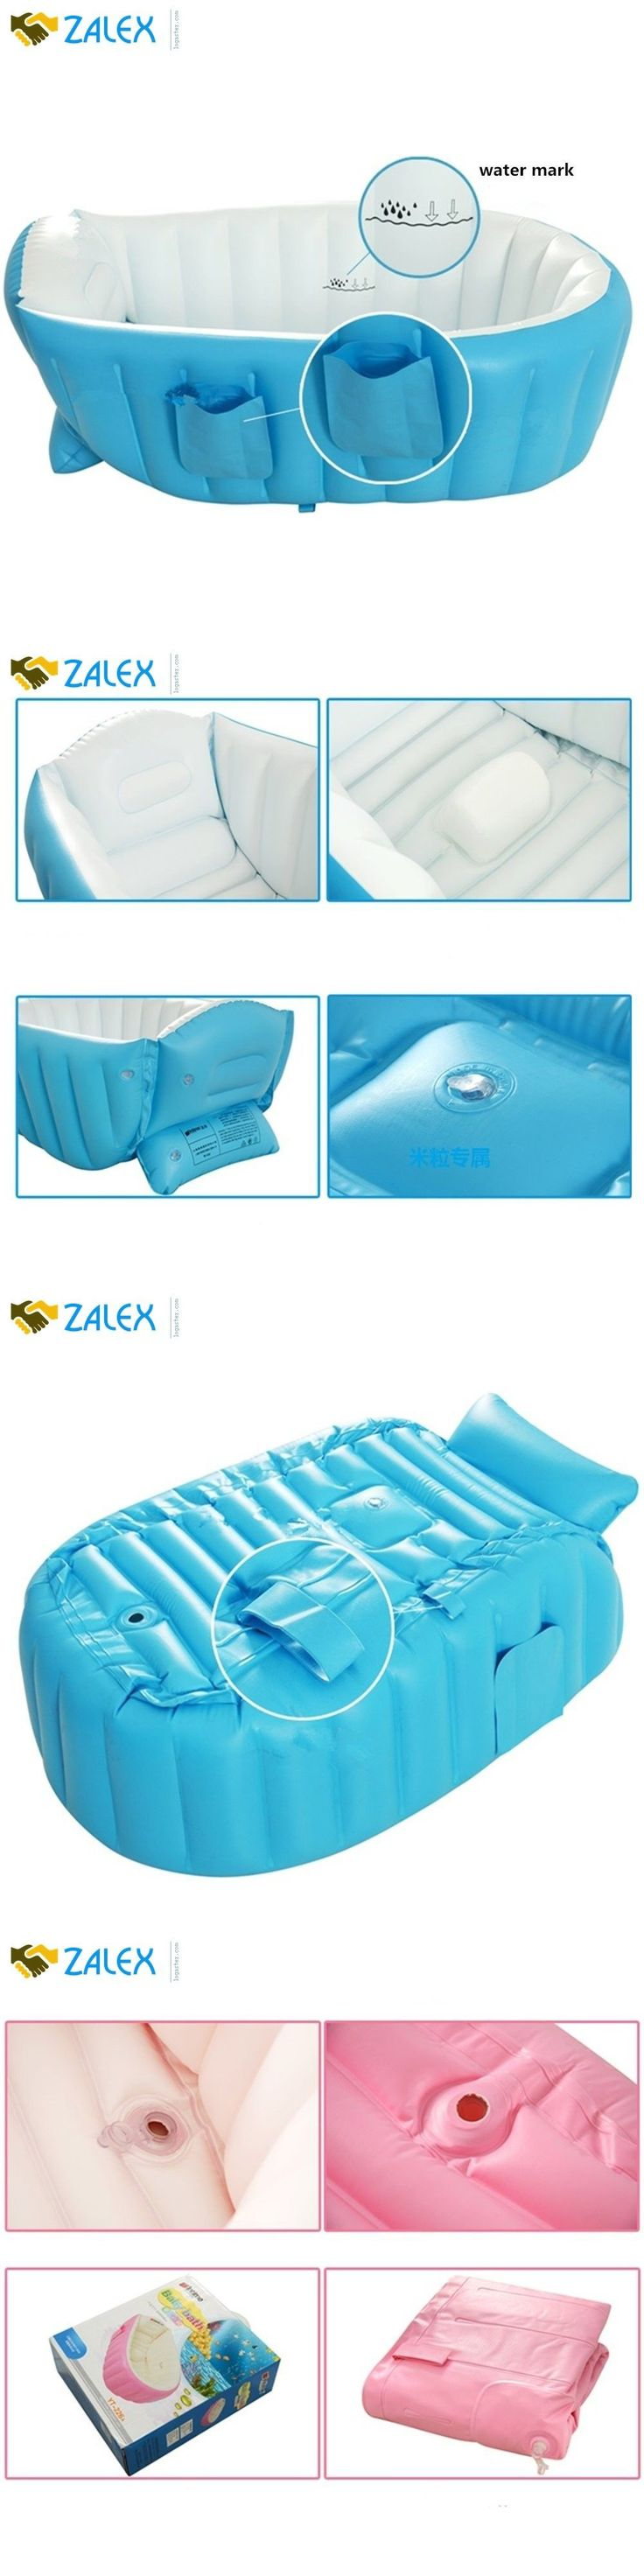 Bath Tub Seats and Rings 162024: Kf445 Large Capacity Baby Inflatable Bath Tub Plastic Mini Air Swimming Pool Kid -> BUY IT NOW ONLY: $32.08 on eBay!